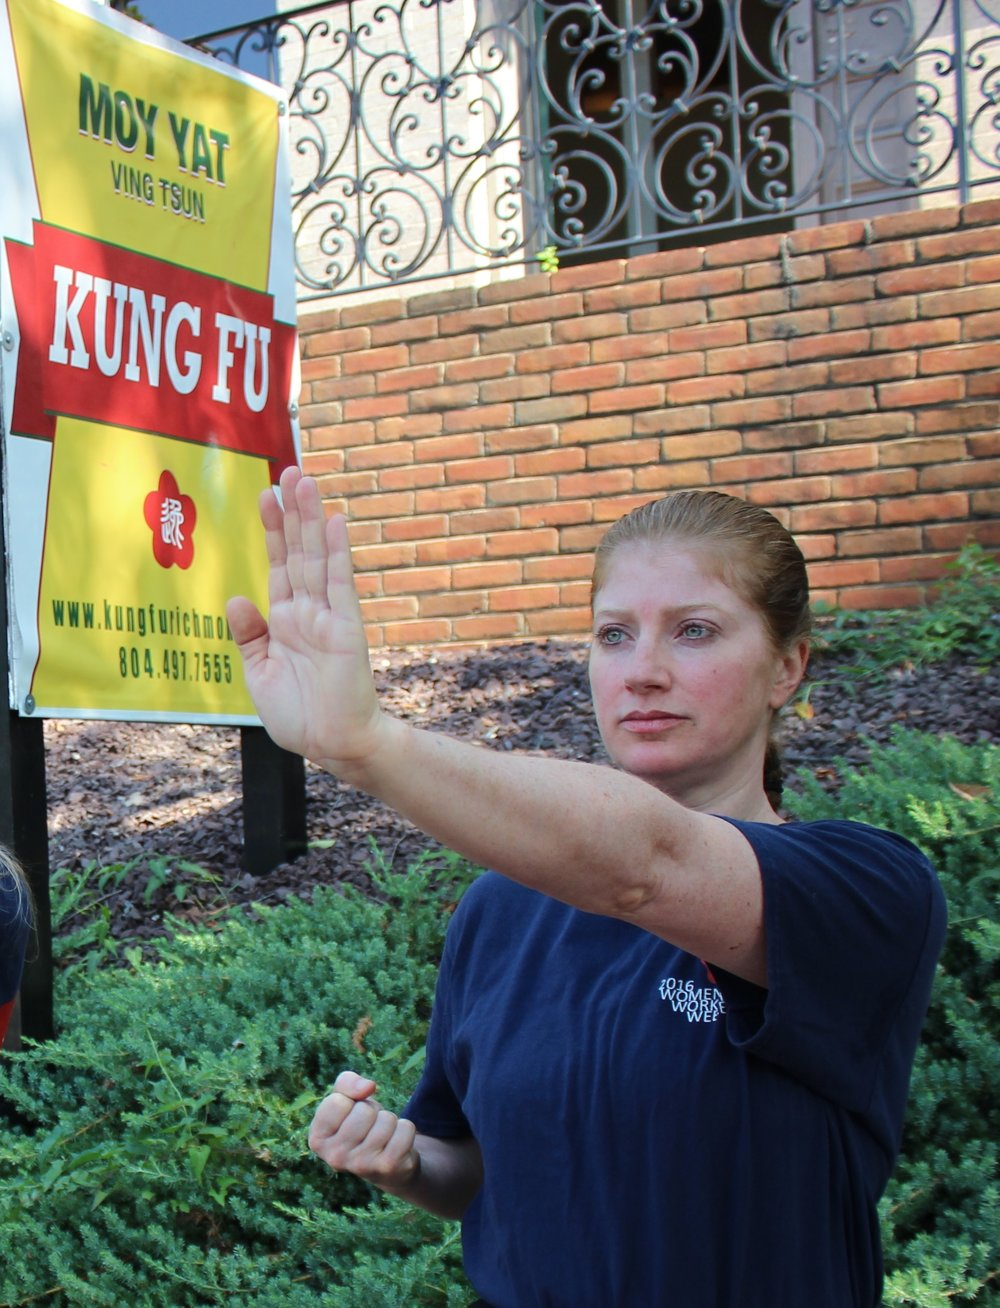 Richmond Moy Yat Kung Fu Academy Women's Program - teaching the martial art of Ving Tsun (wing chun) Kung Fu for health and self-defense